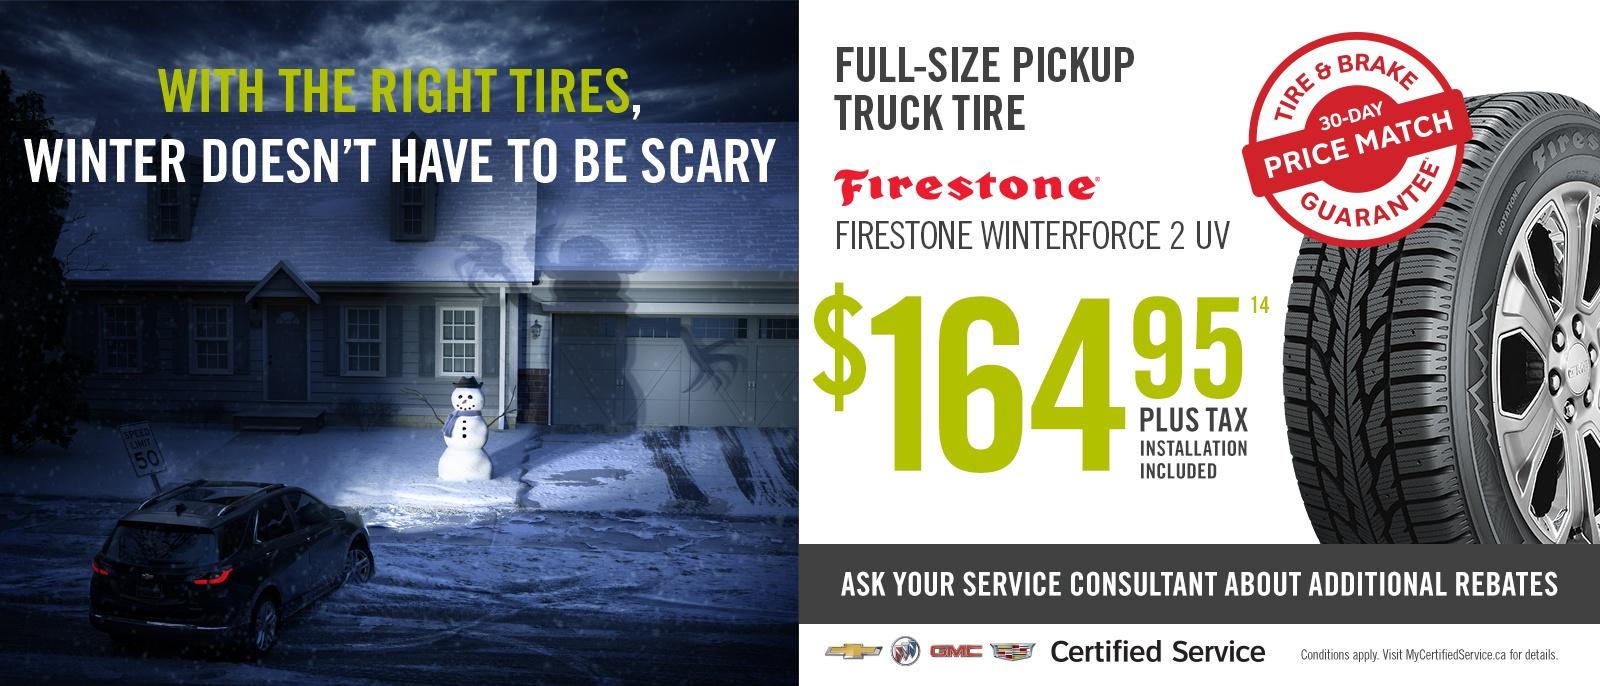 Winter Tire Specials Trucks